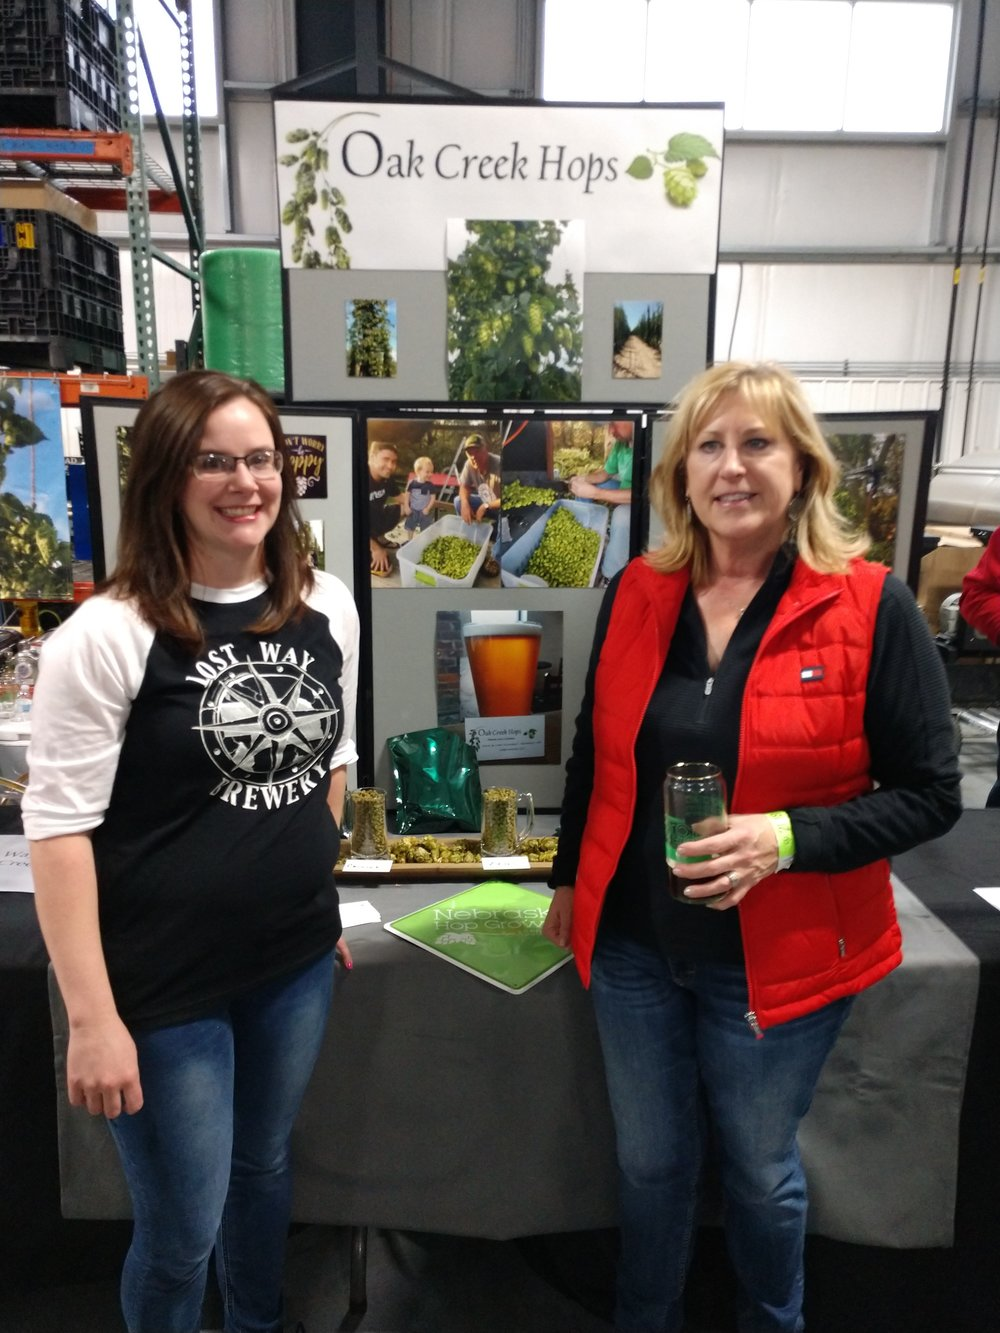 2018 Top Hop - Kimberly Hines (Lost Way Brewery, Holdrege, NE) & Lisa Gleason